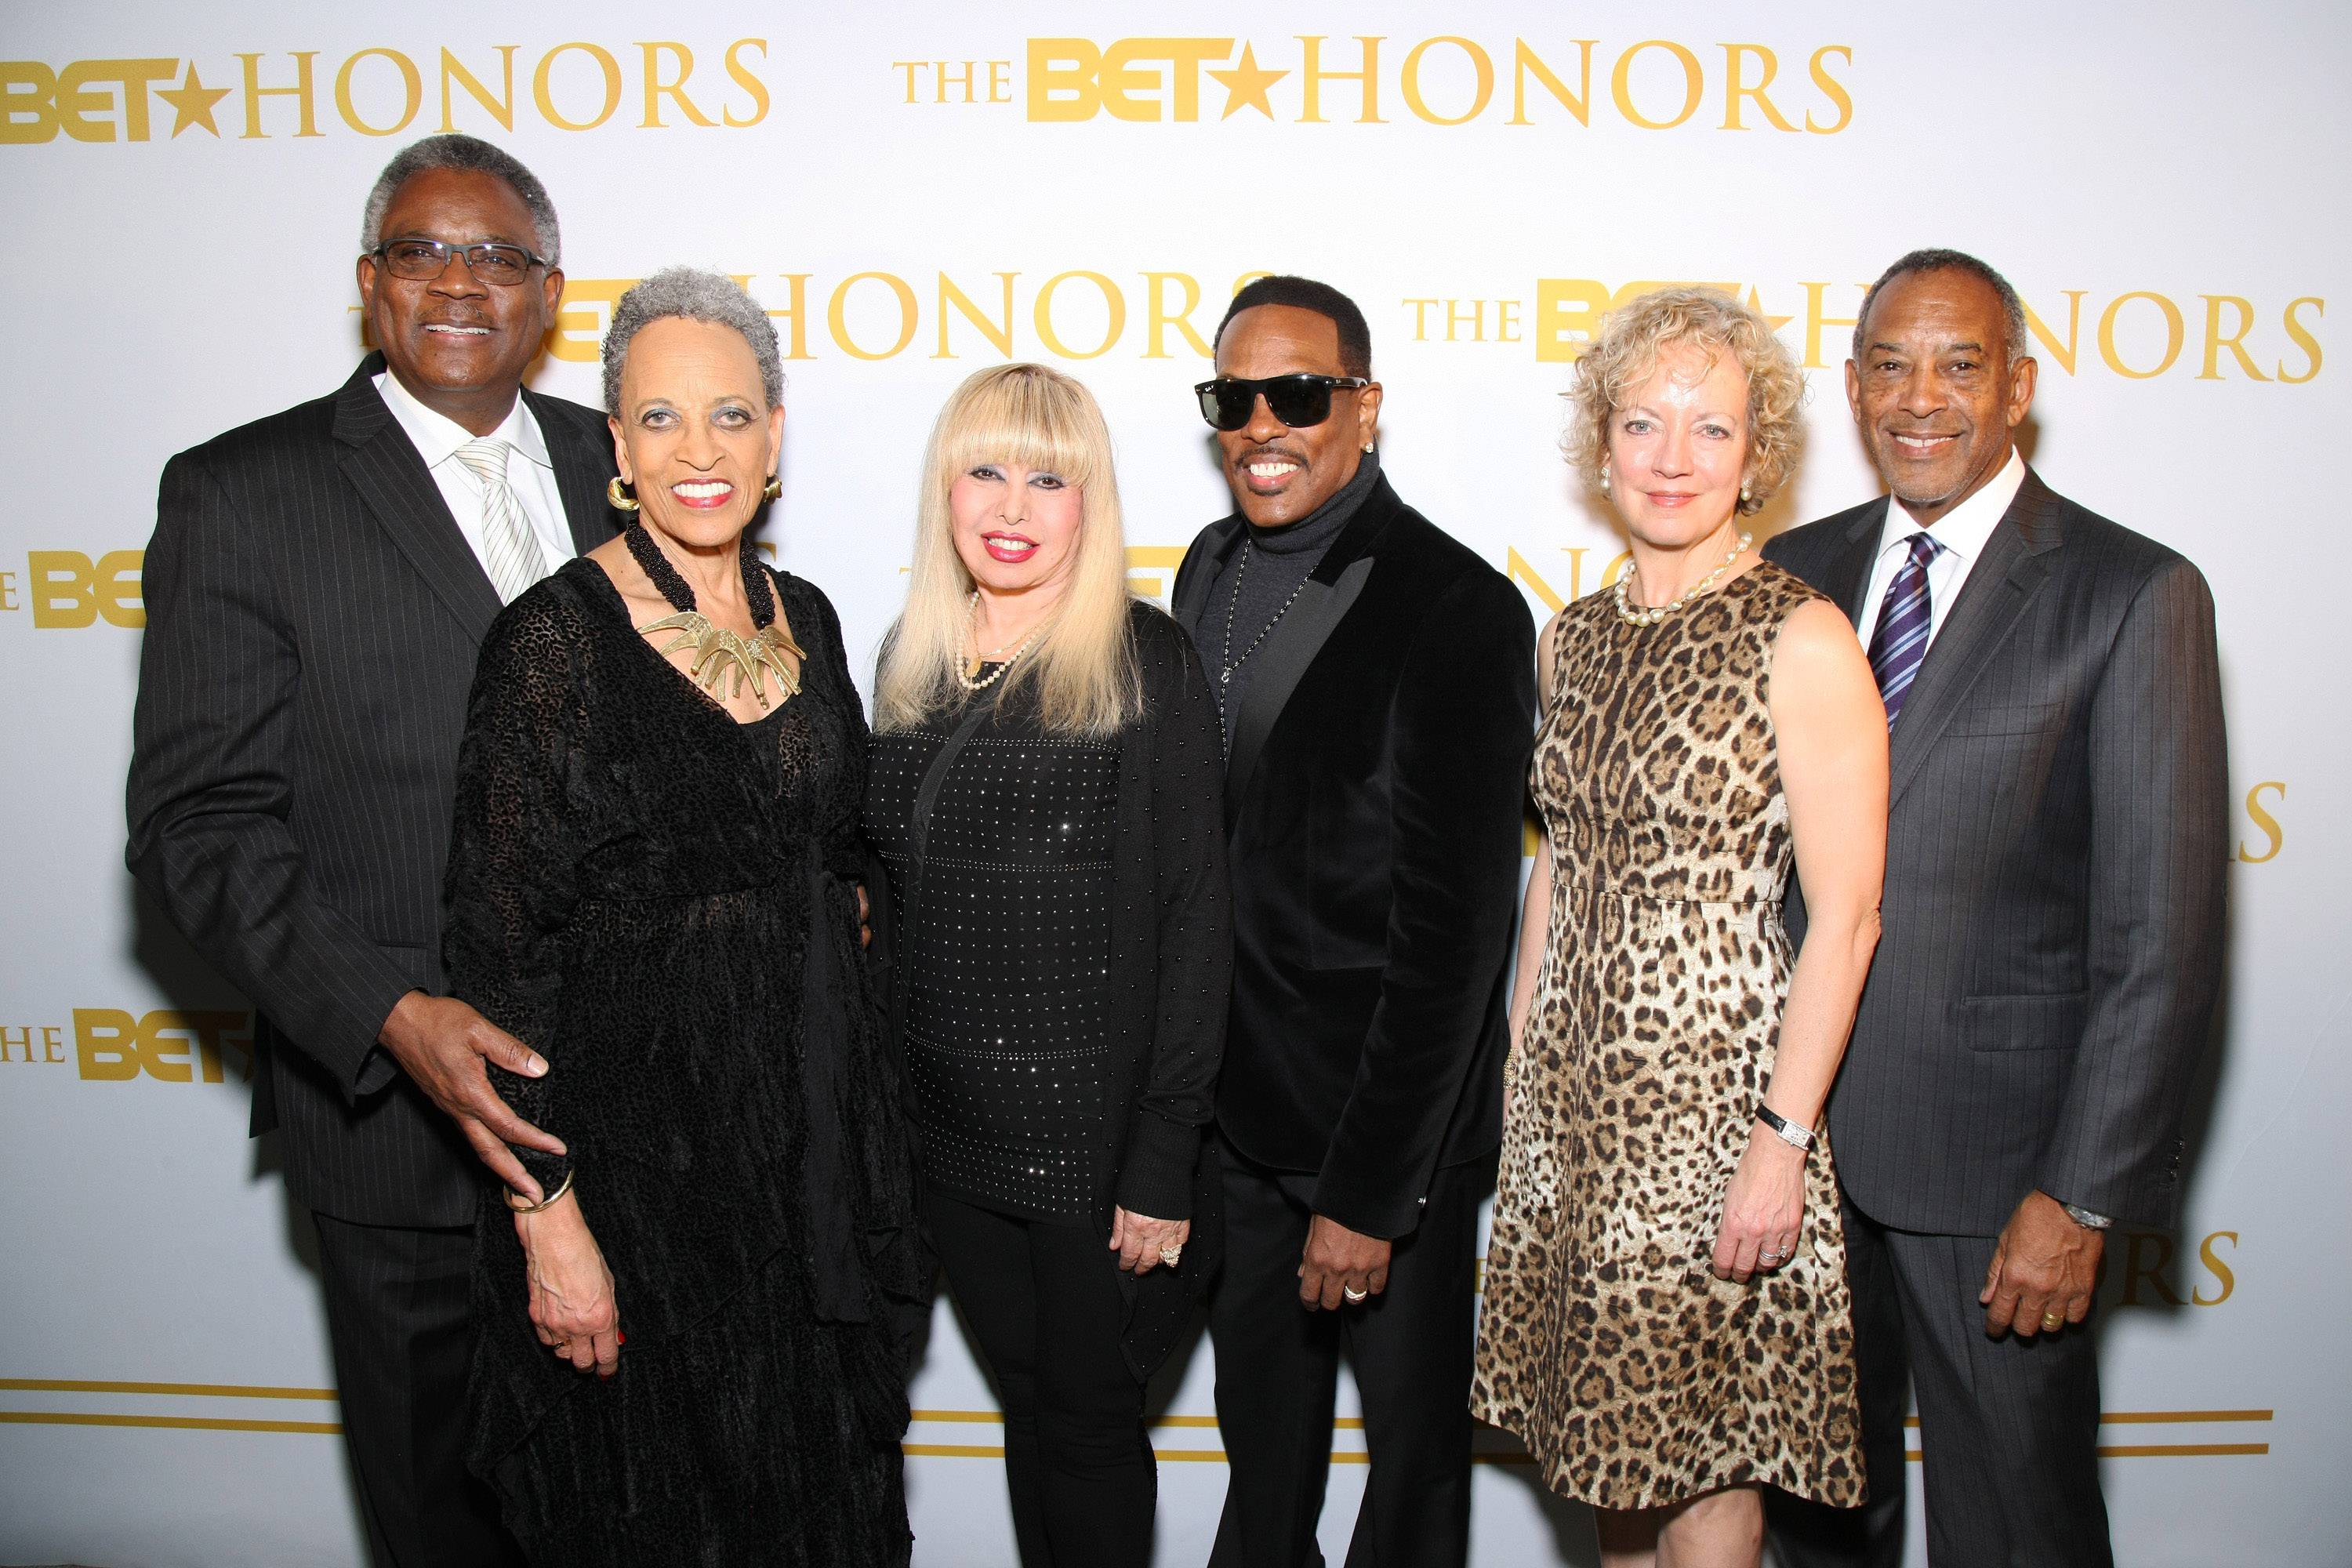 What Extraordinary Looks Like - Behind every luminary is their support system. Here, performer Charlie Wilson and honorees John W. ThompsonandDr. Johnnetta Betsch Cole are pictured with their spouses. (Photo: Bennett Raglin/BET/Getty Images for BET)